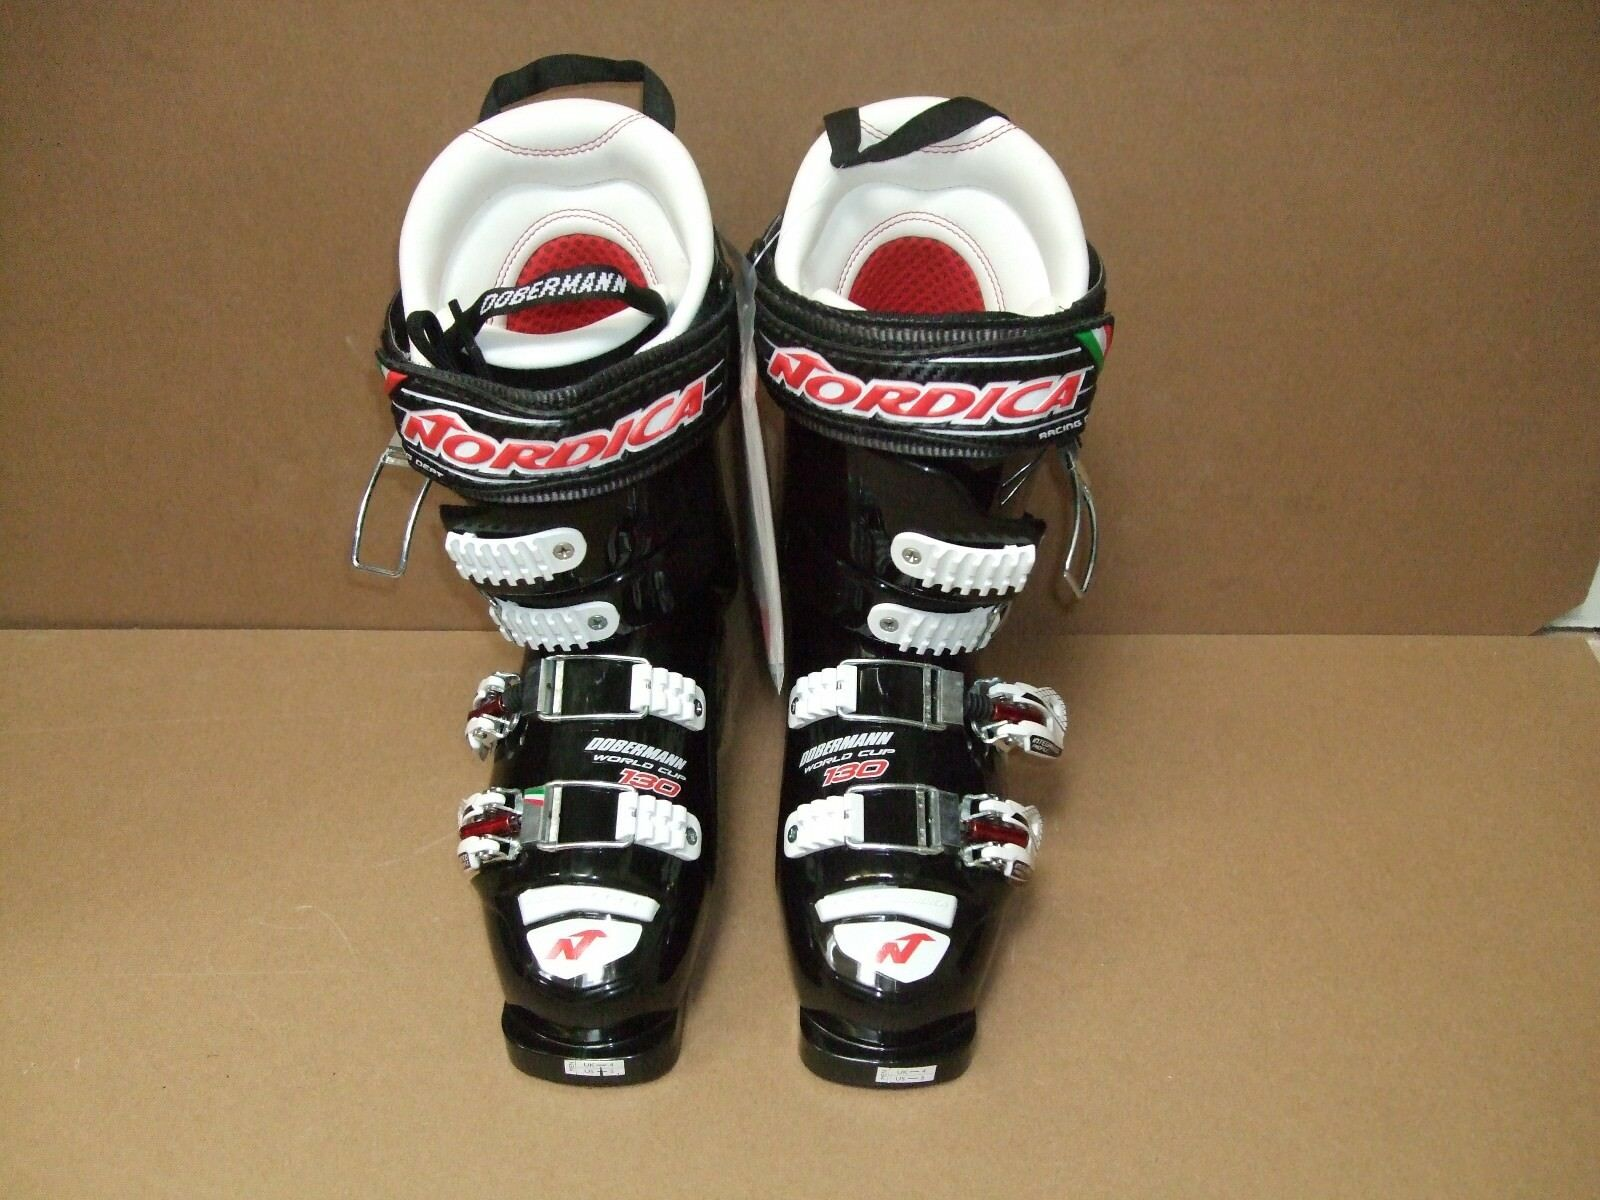 Nordica Doberman World Cup 130 Ski Boots (size 25) - New condition